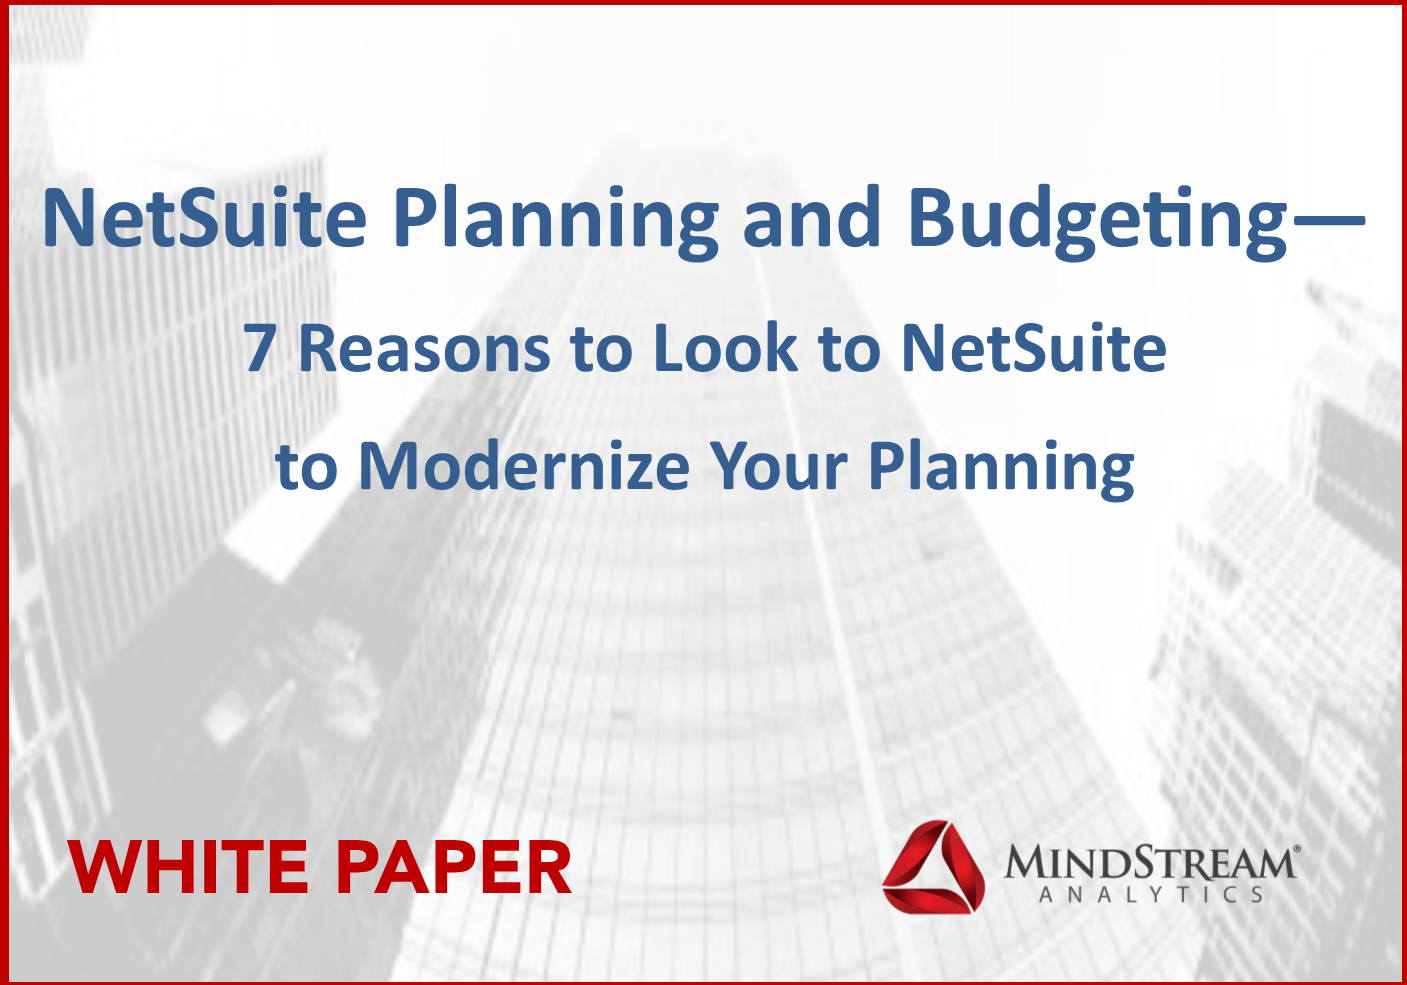 Oracle Netsuite Planning and Budgeting